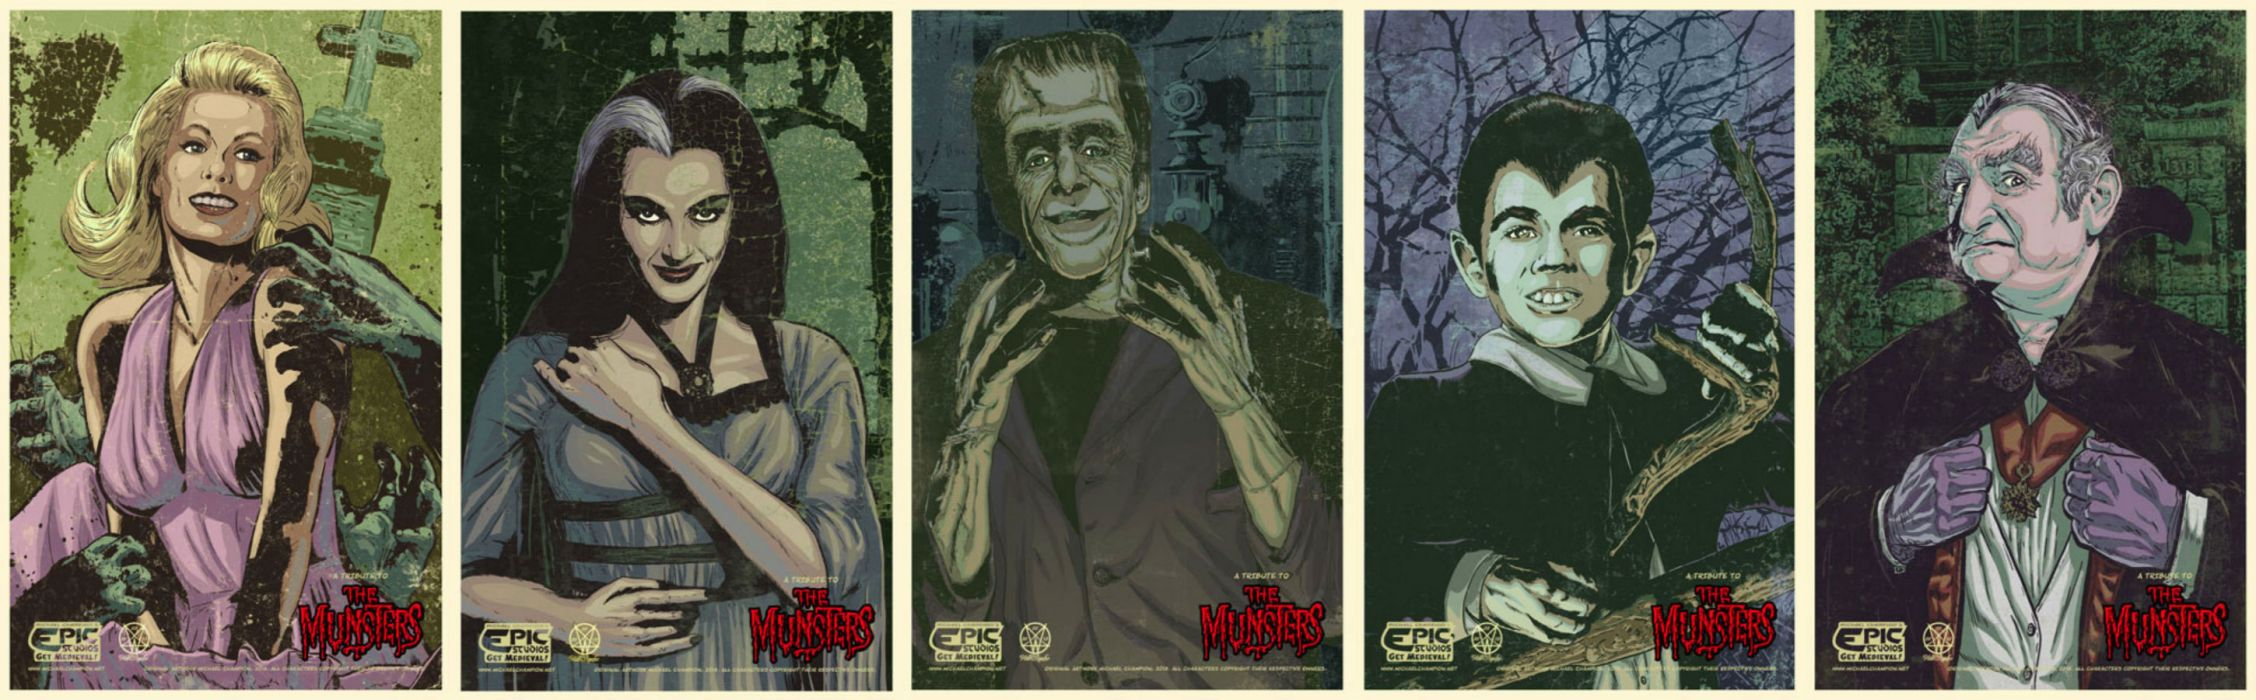 THE-MUNSTERS comedy dark frankenstein munsters halloween television (10) wallpaper